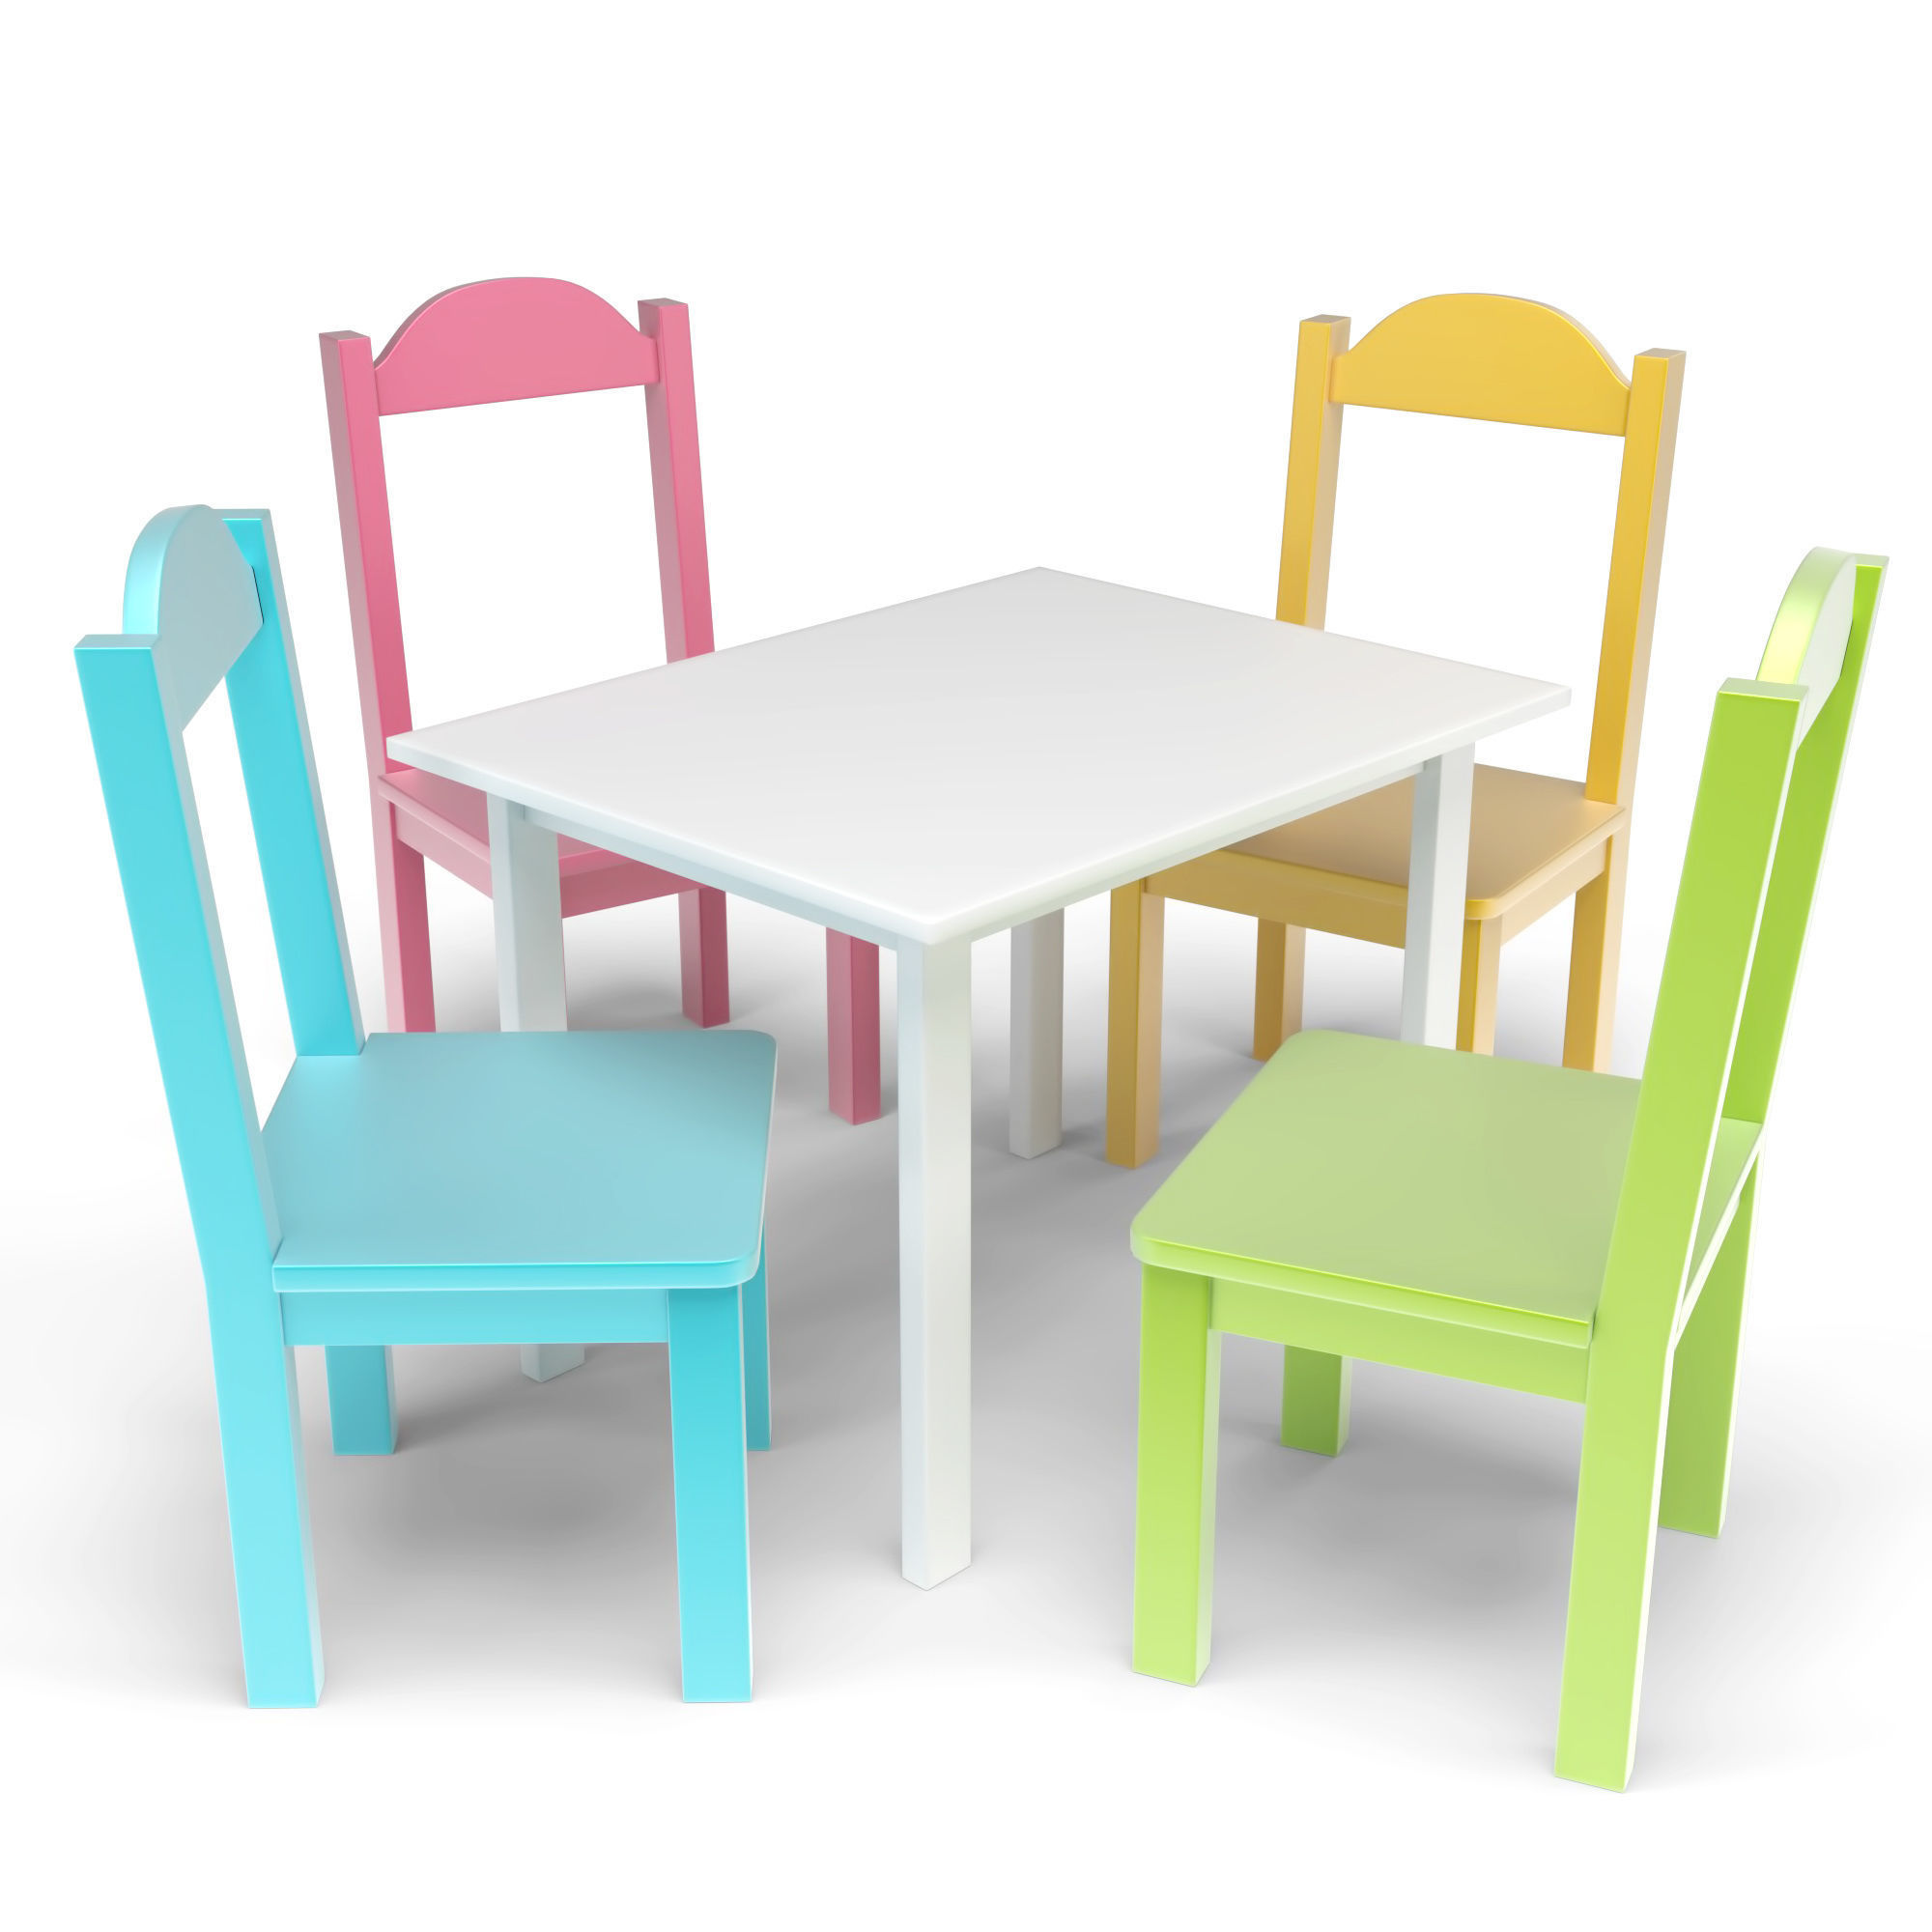 Infant Table And Chairs Kids Table And Chairs Set 3d Model